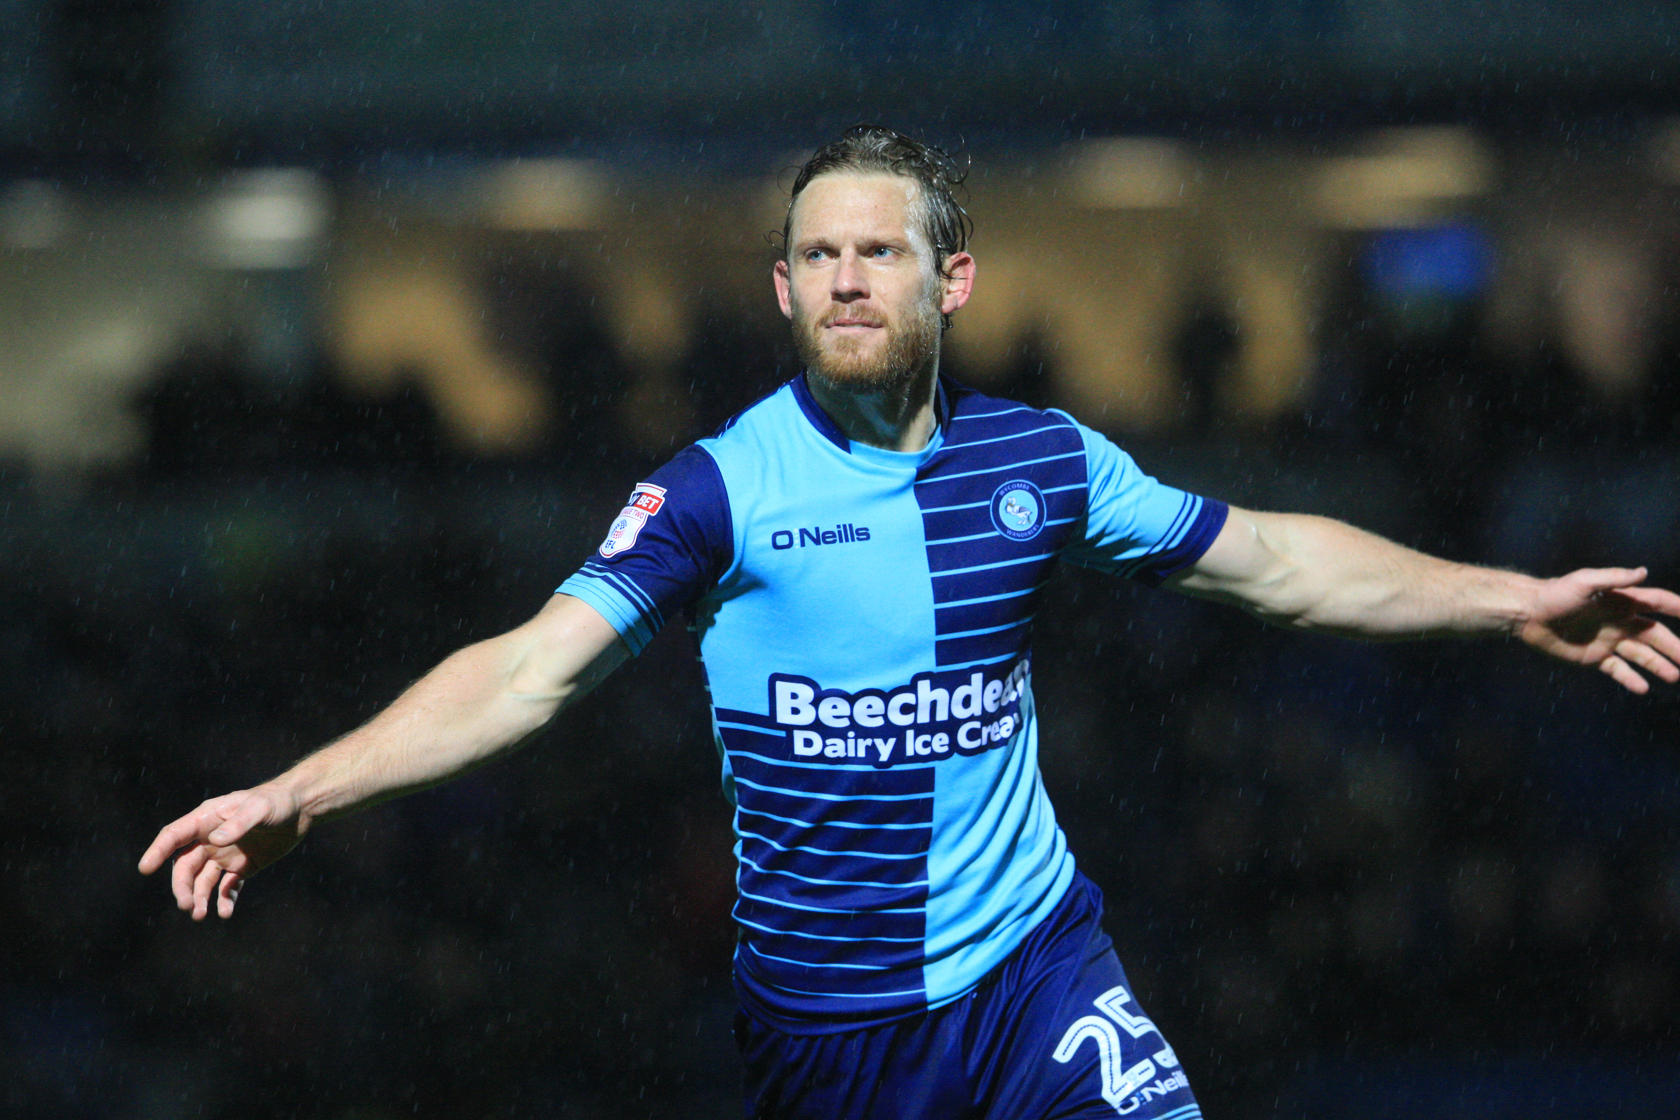 Mackail-Smith scored his ninth goal of the season at Gresty Road